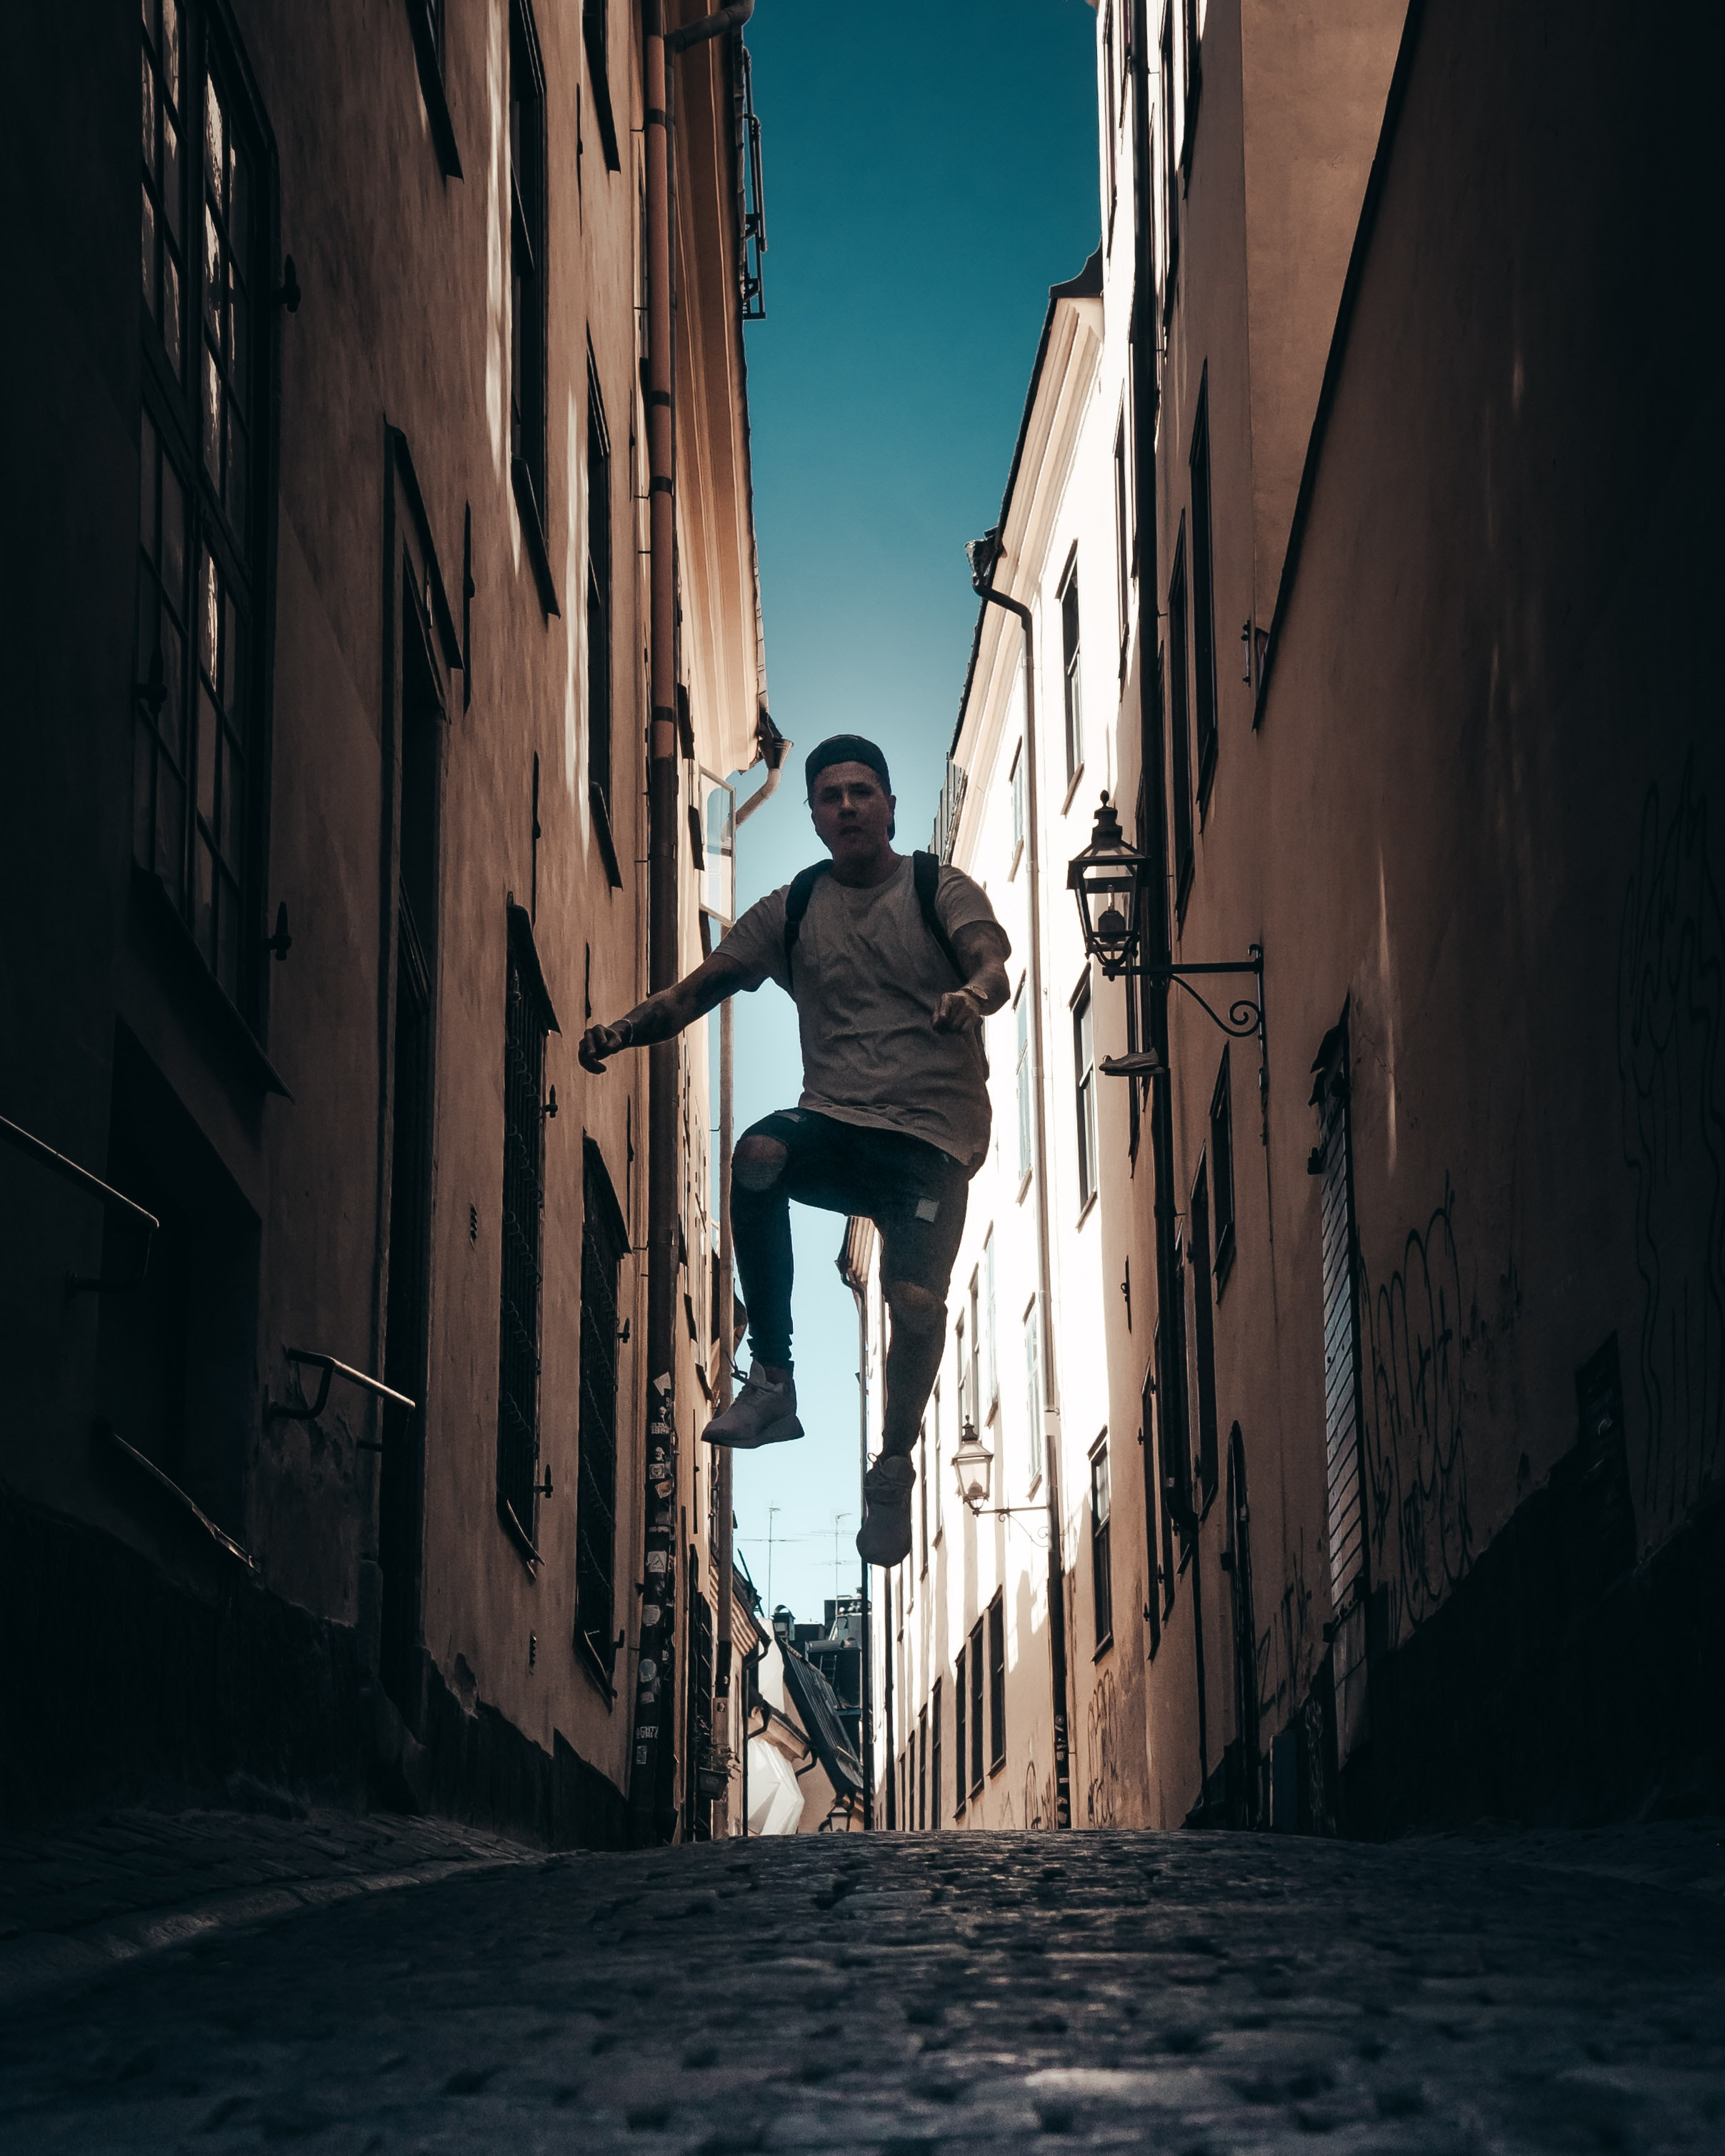 man jumping in middle of brown buildings